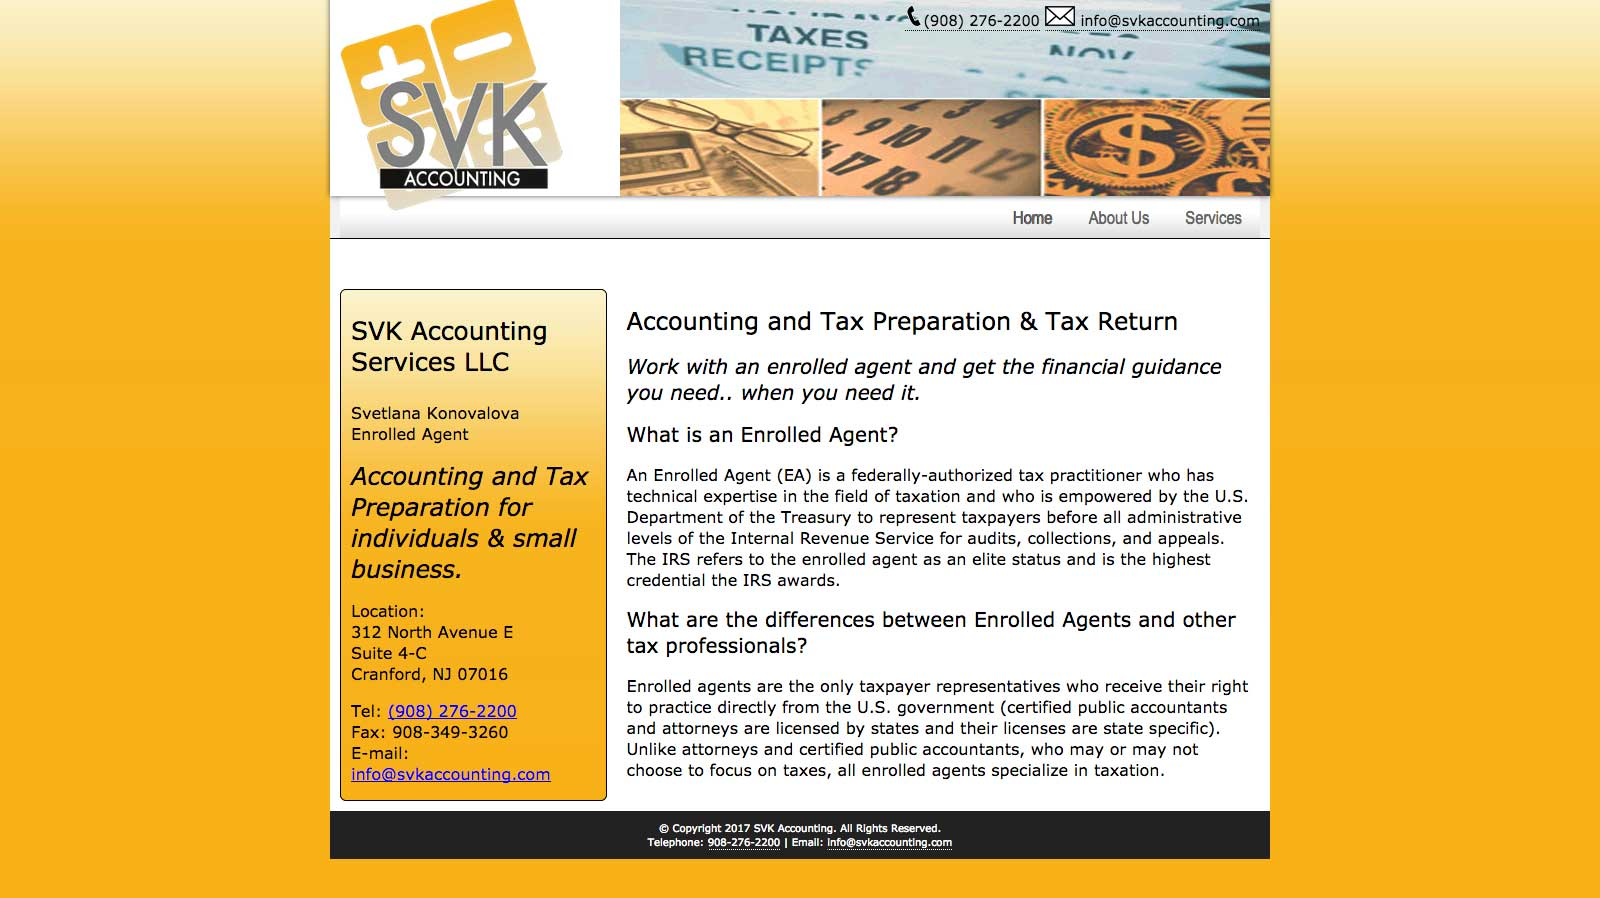 SVK Accounting Services LLC